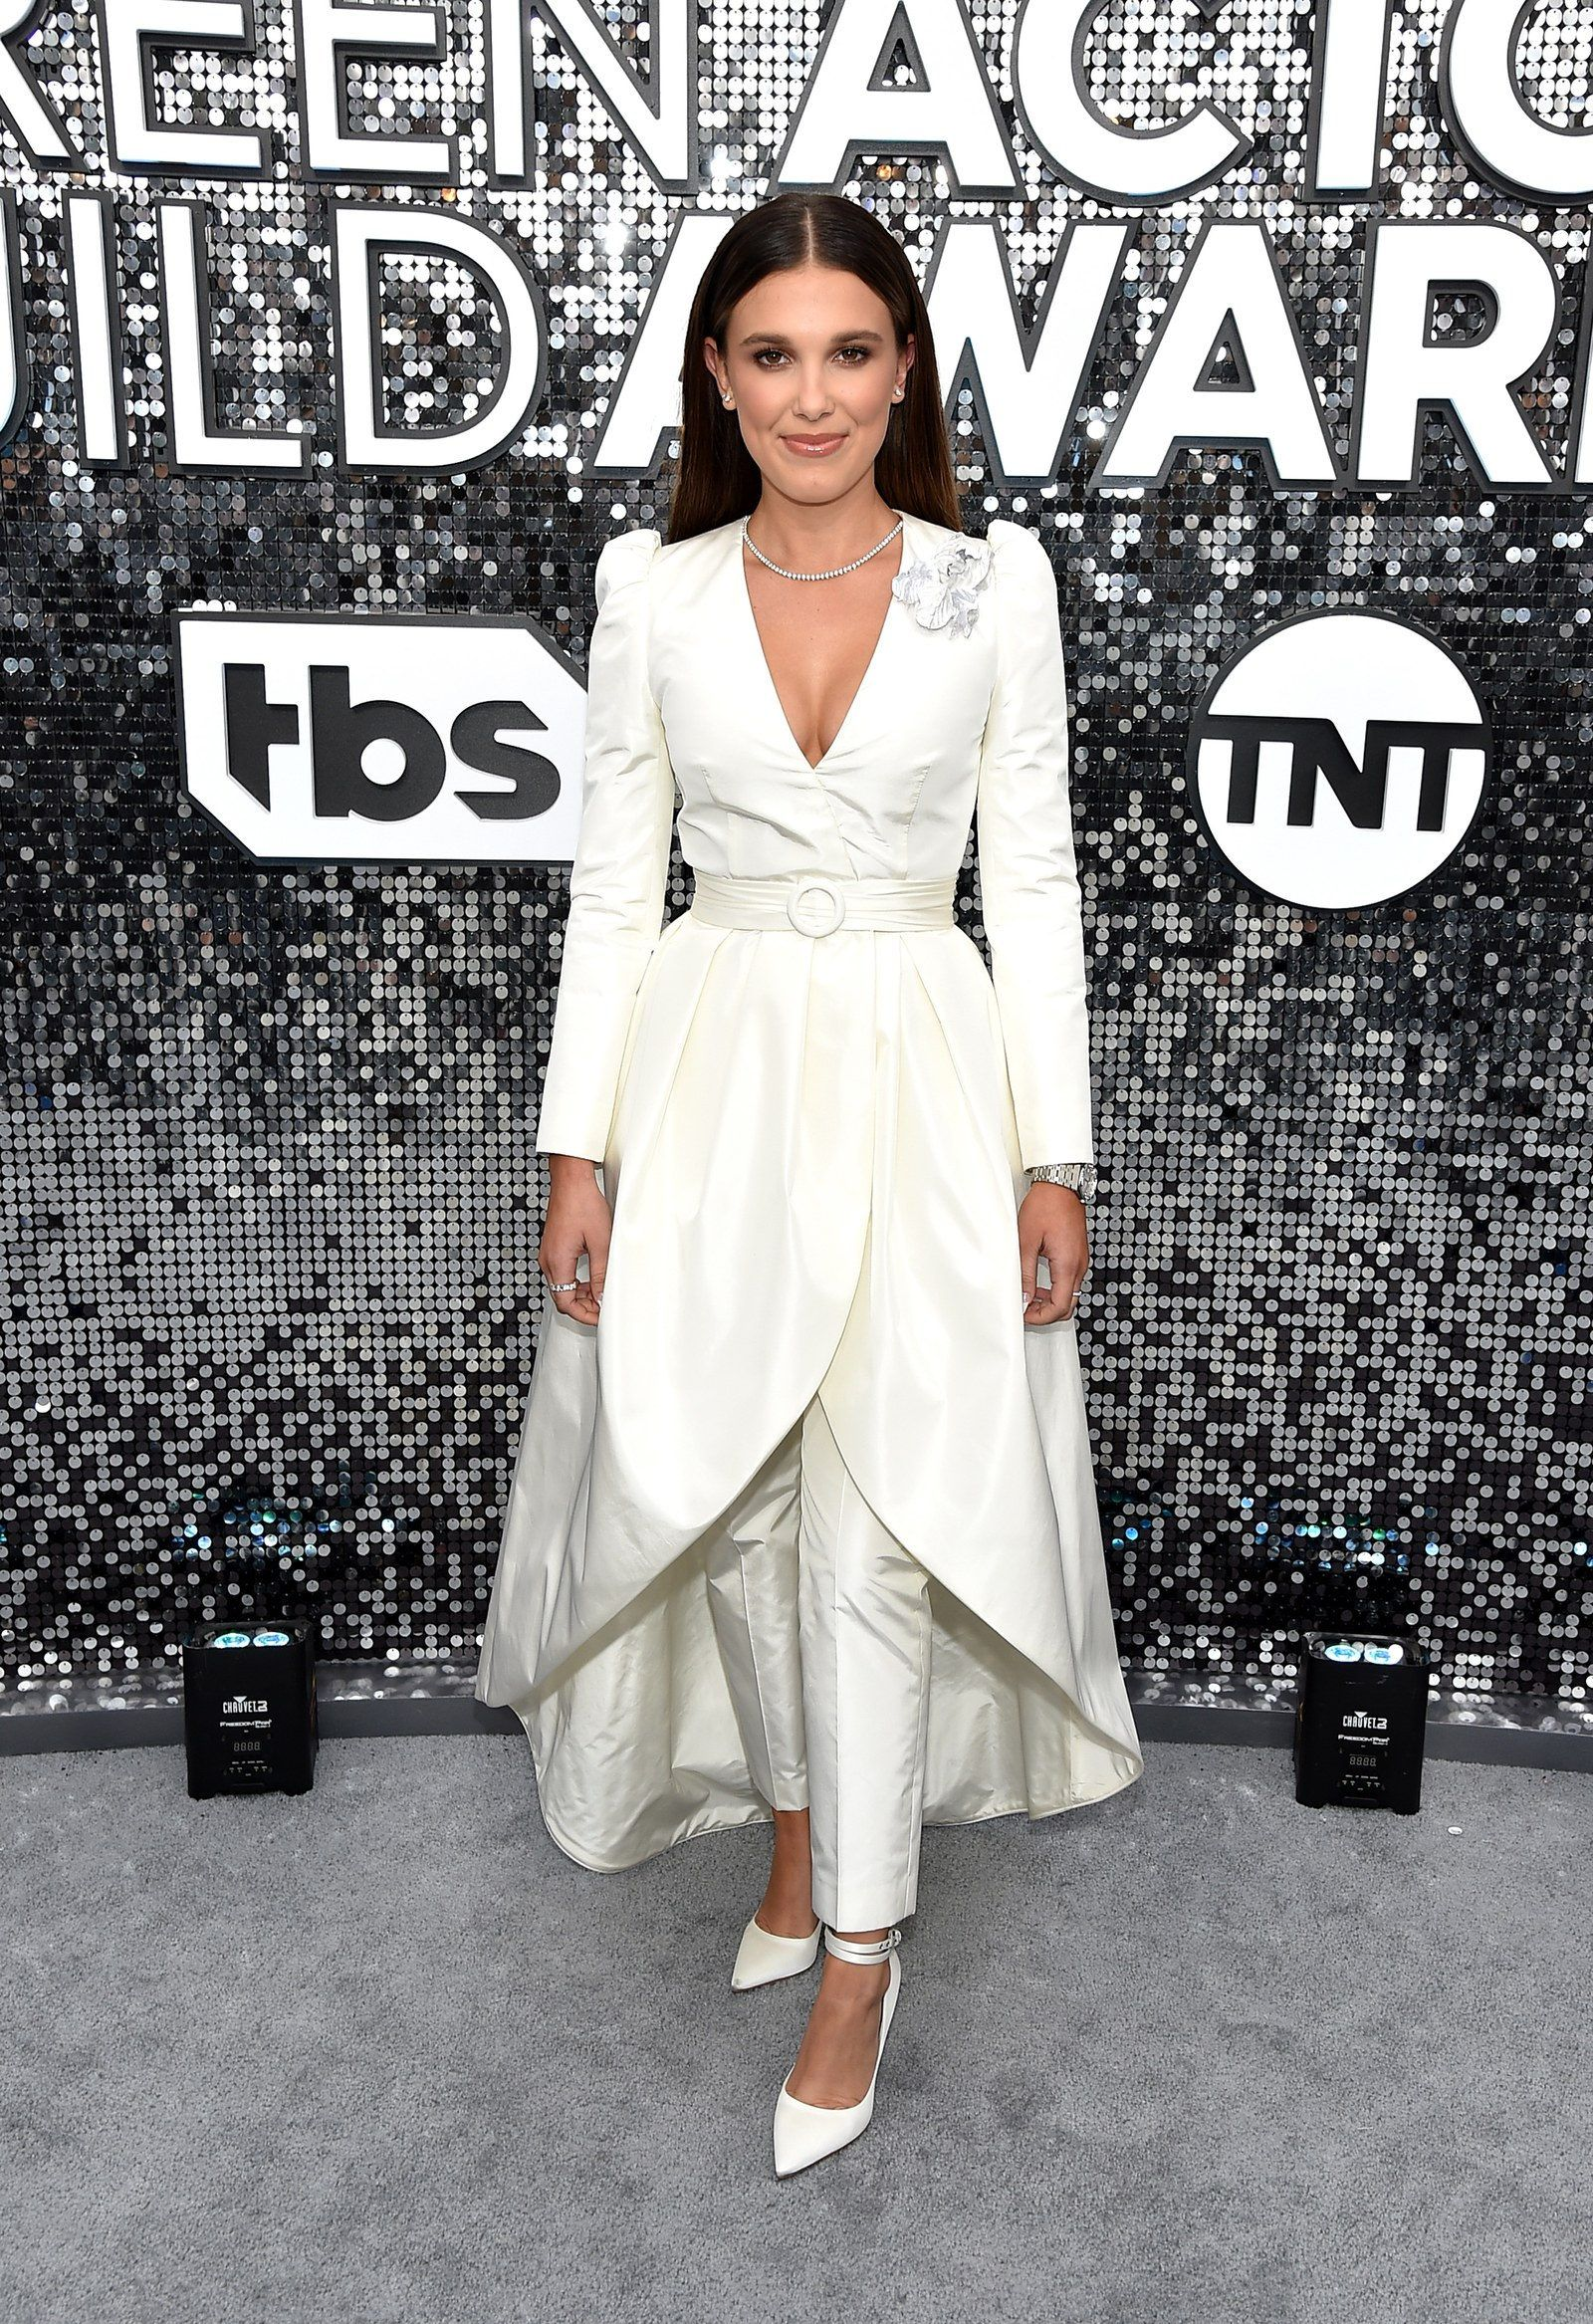 The Best Dressed Stars at the 2020 SAG Awards in 2020